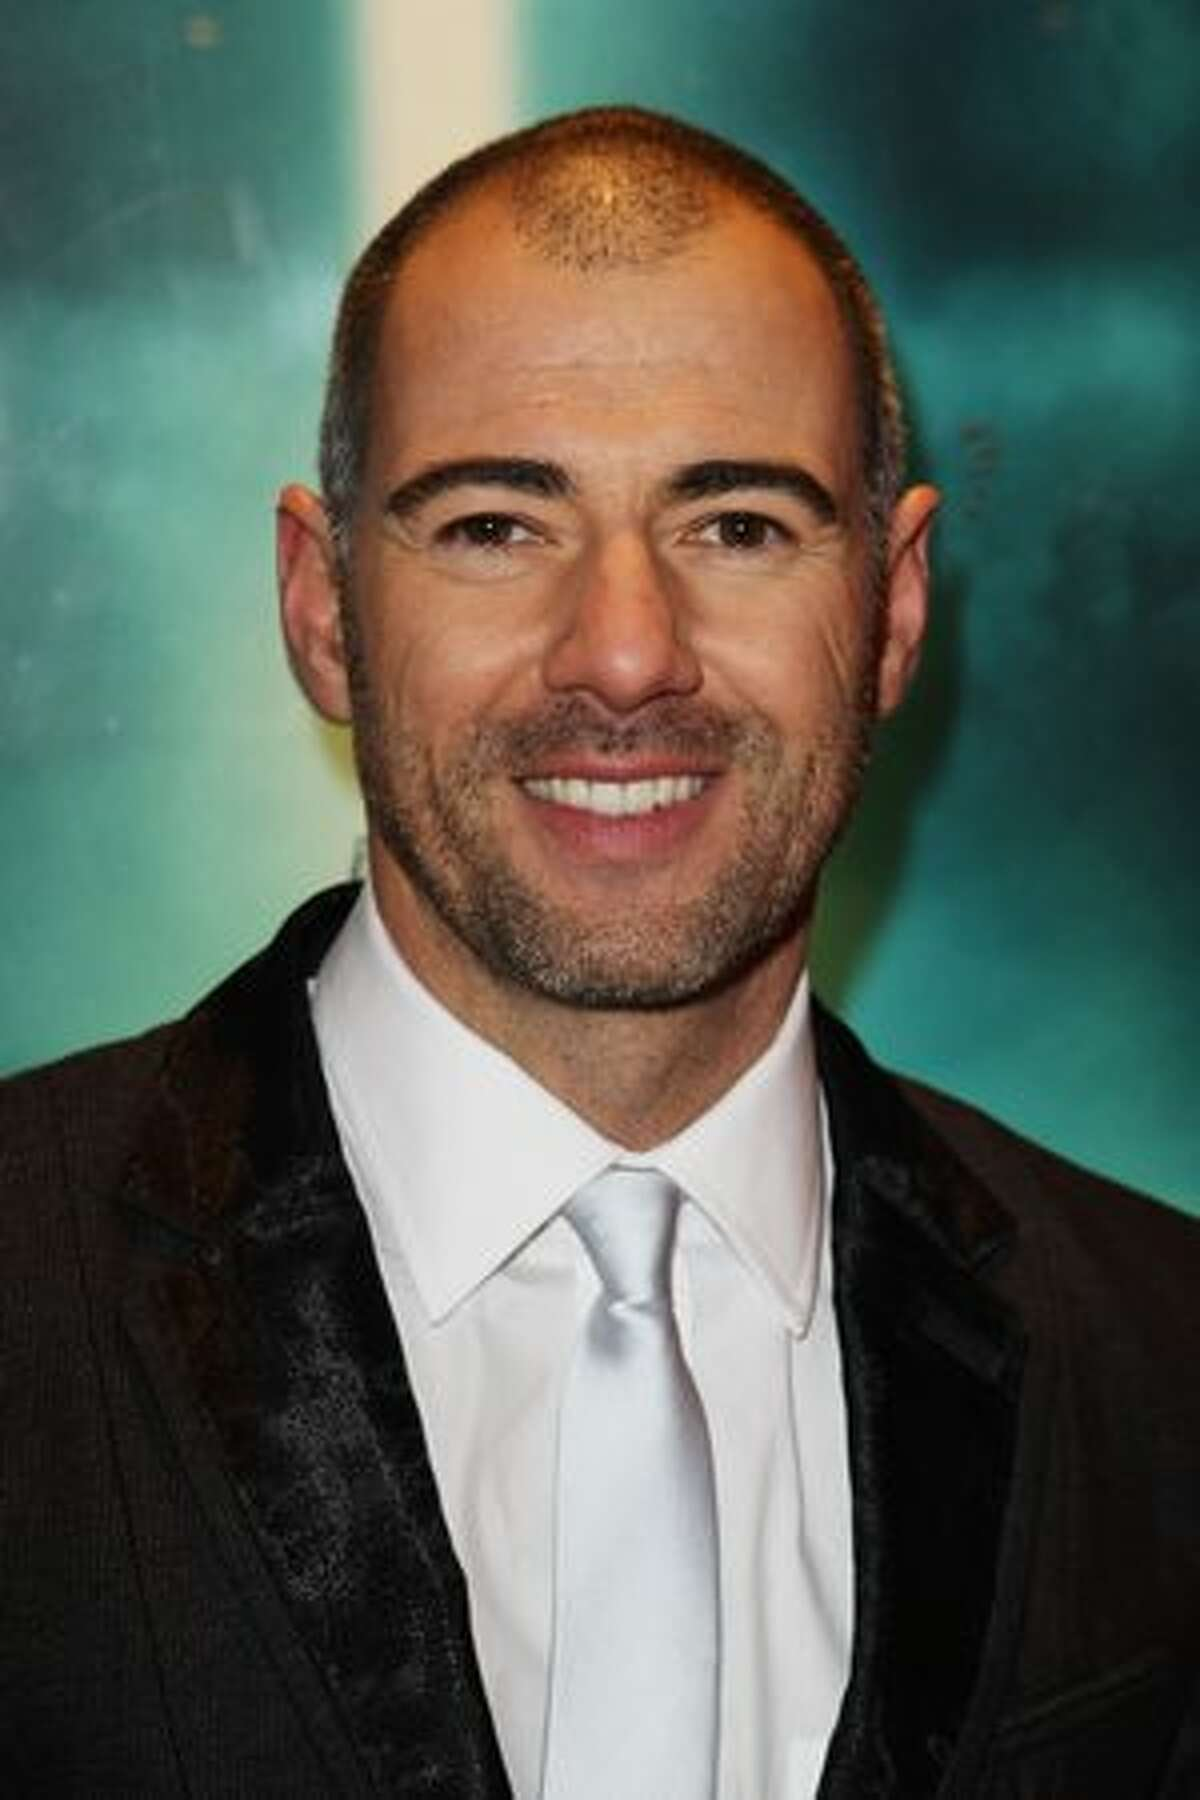 Daniel Simon attends the UK premiere of Tron: Legacy held at The Empire Leicester Square in London, England.